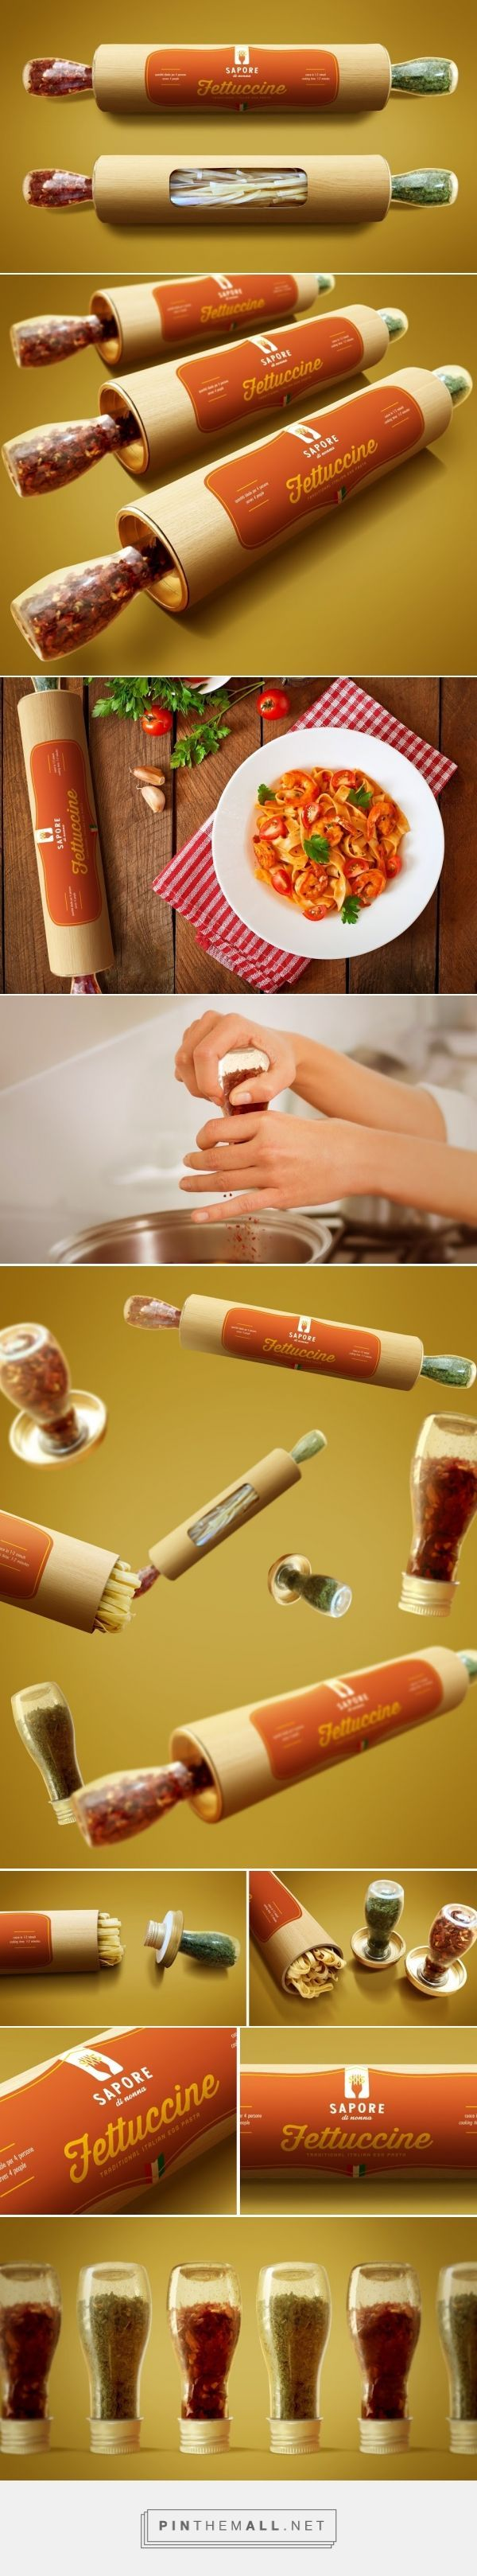 ‎Rolling pin Pasta ‎Packaging with spice bottle ‎handle designed by Breno Cardoso (Brazil) - www.packagingofth...